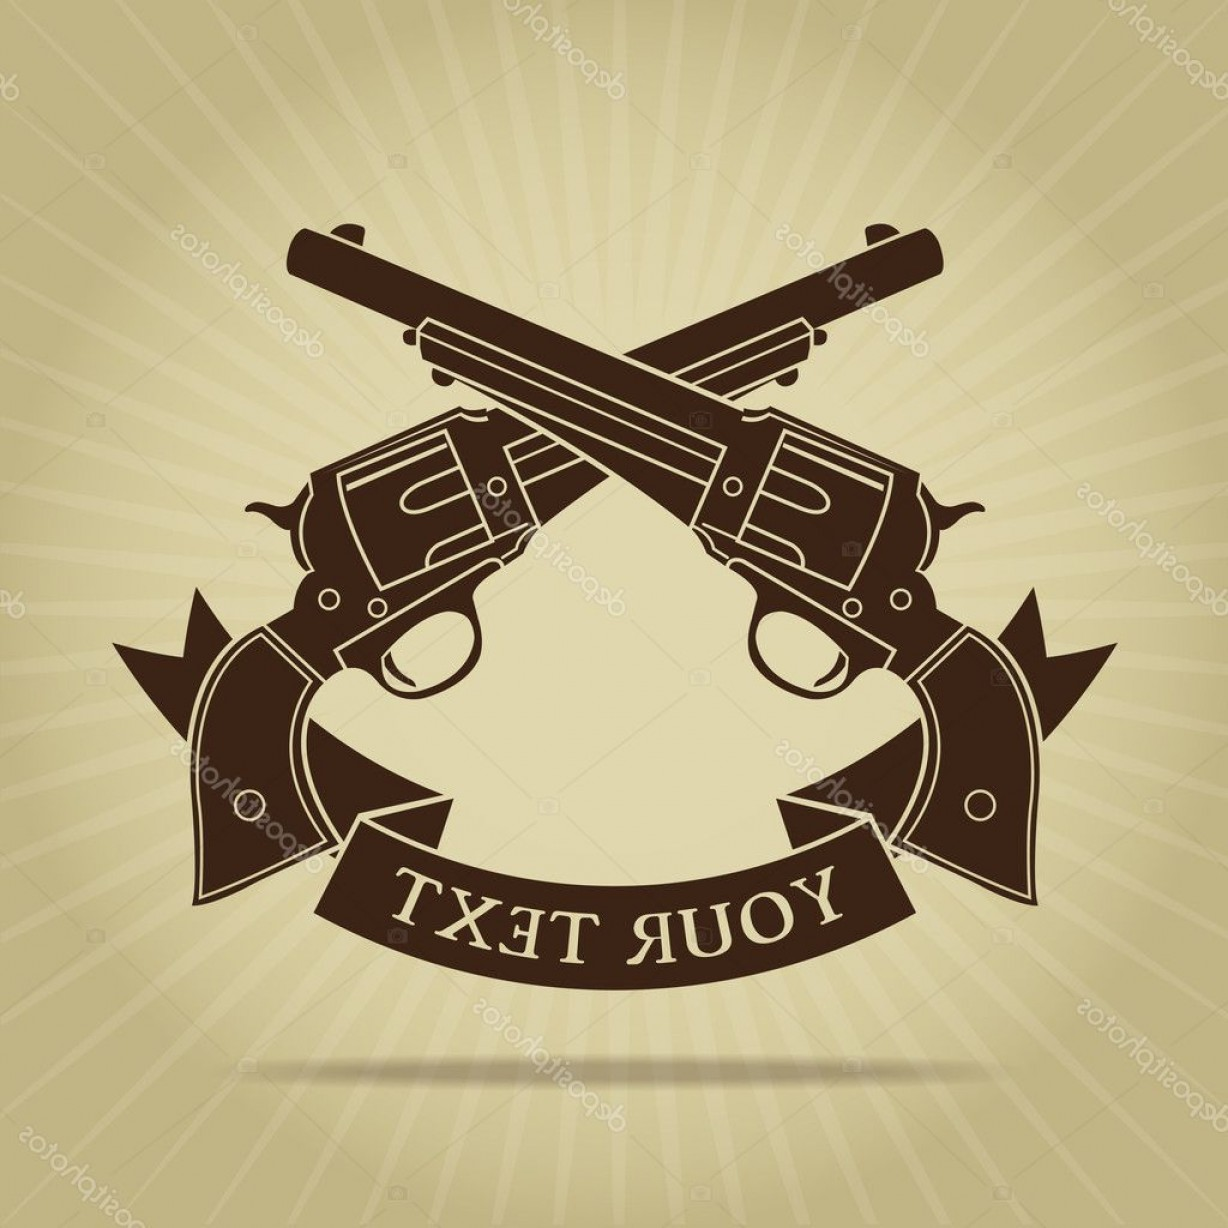 Vintage Crossed Pistols Vector: Stock Illustration Vintage Crossed Pistols Silhouette